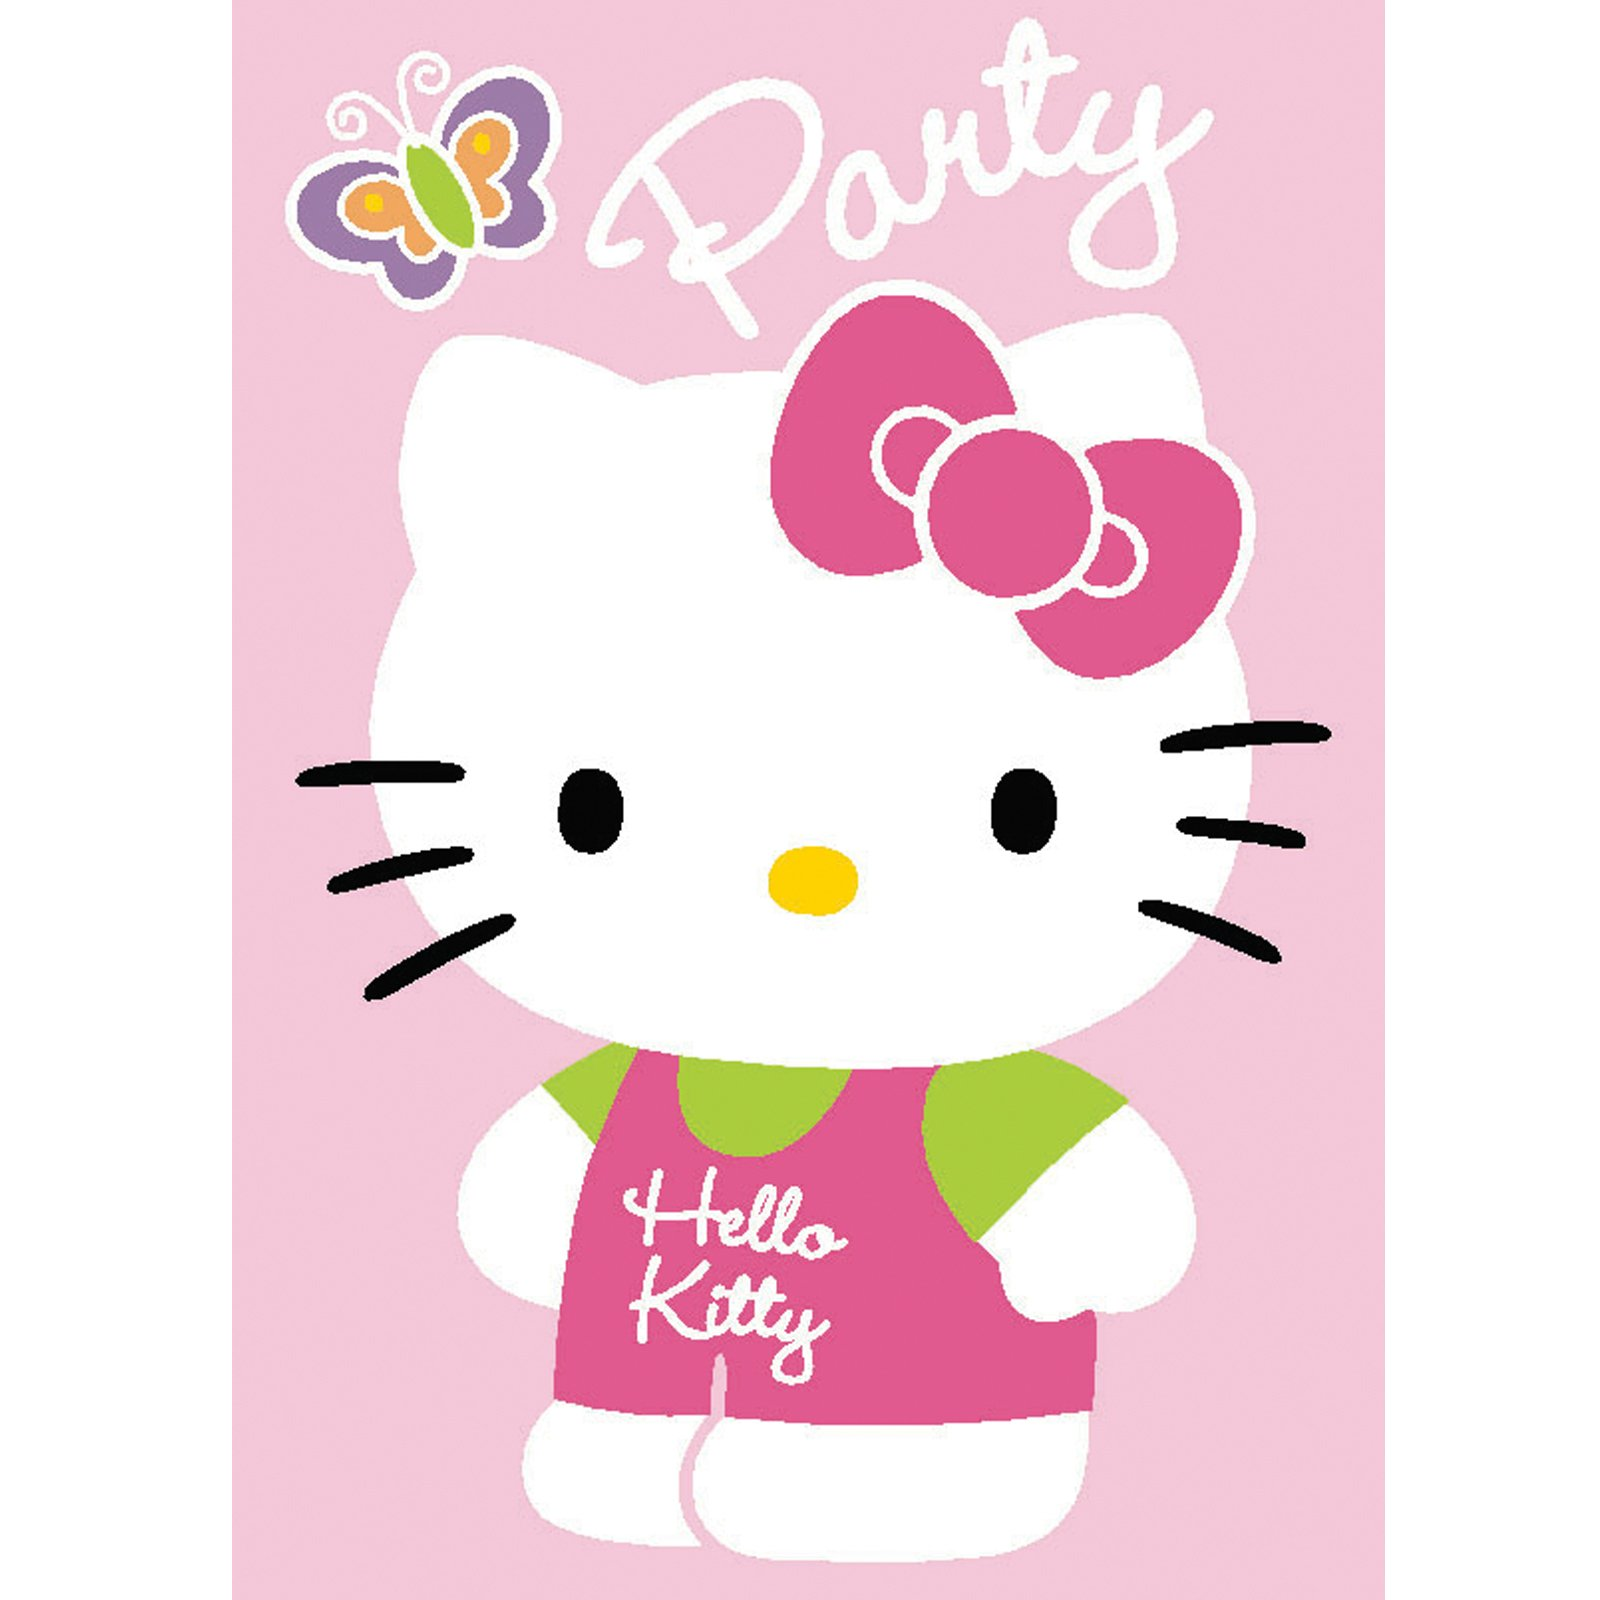 Dessins en couleurs imprimer hello kitty num ro 156282 - Hello kitty imprimer ...